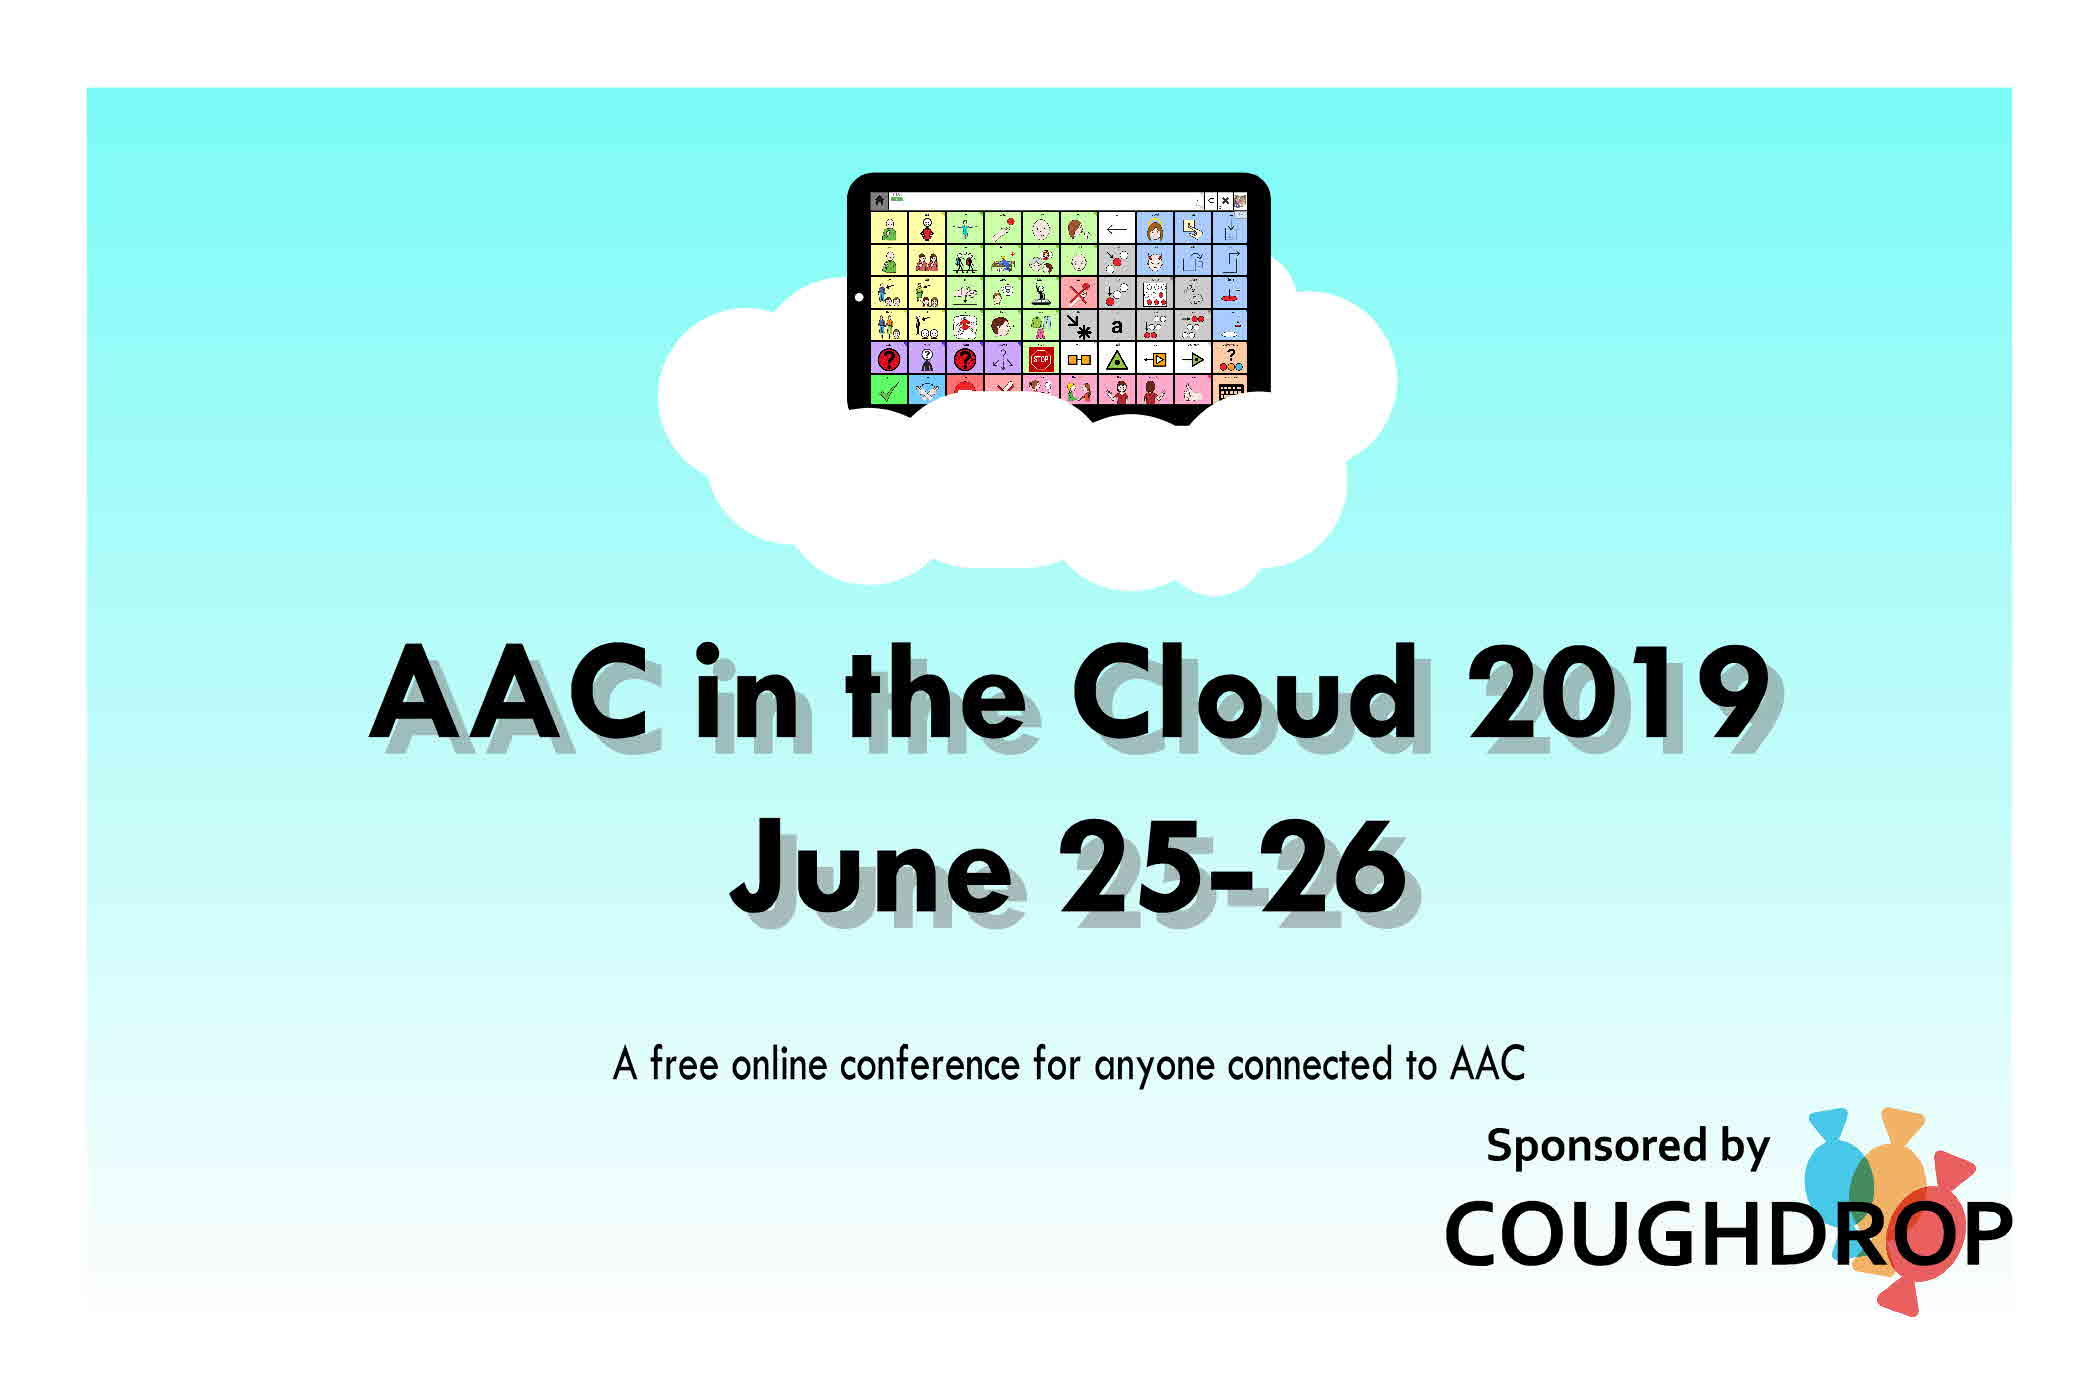 AACinthecloud2019